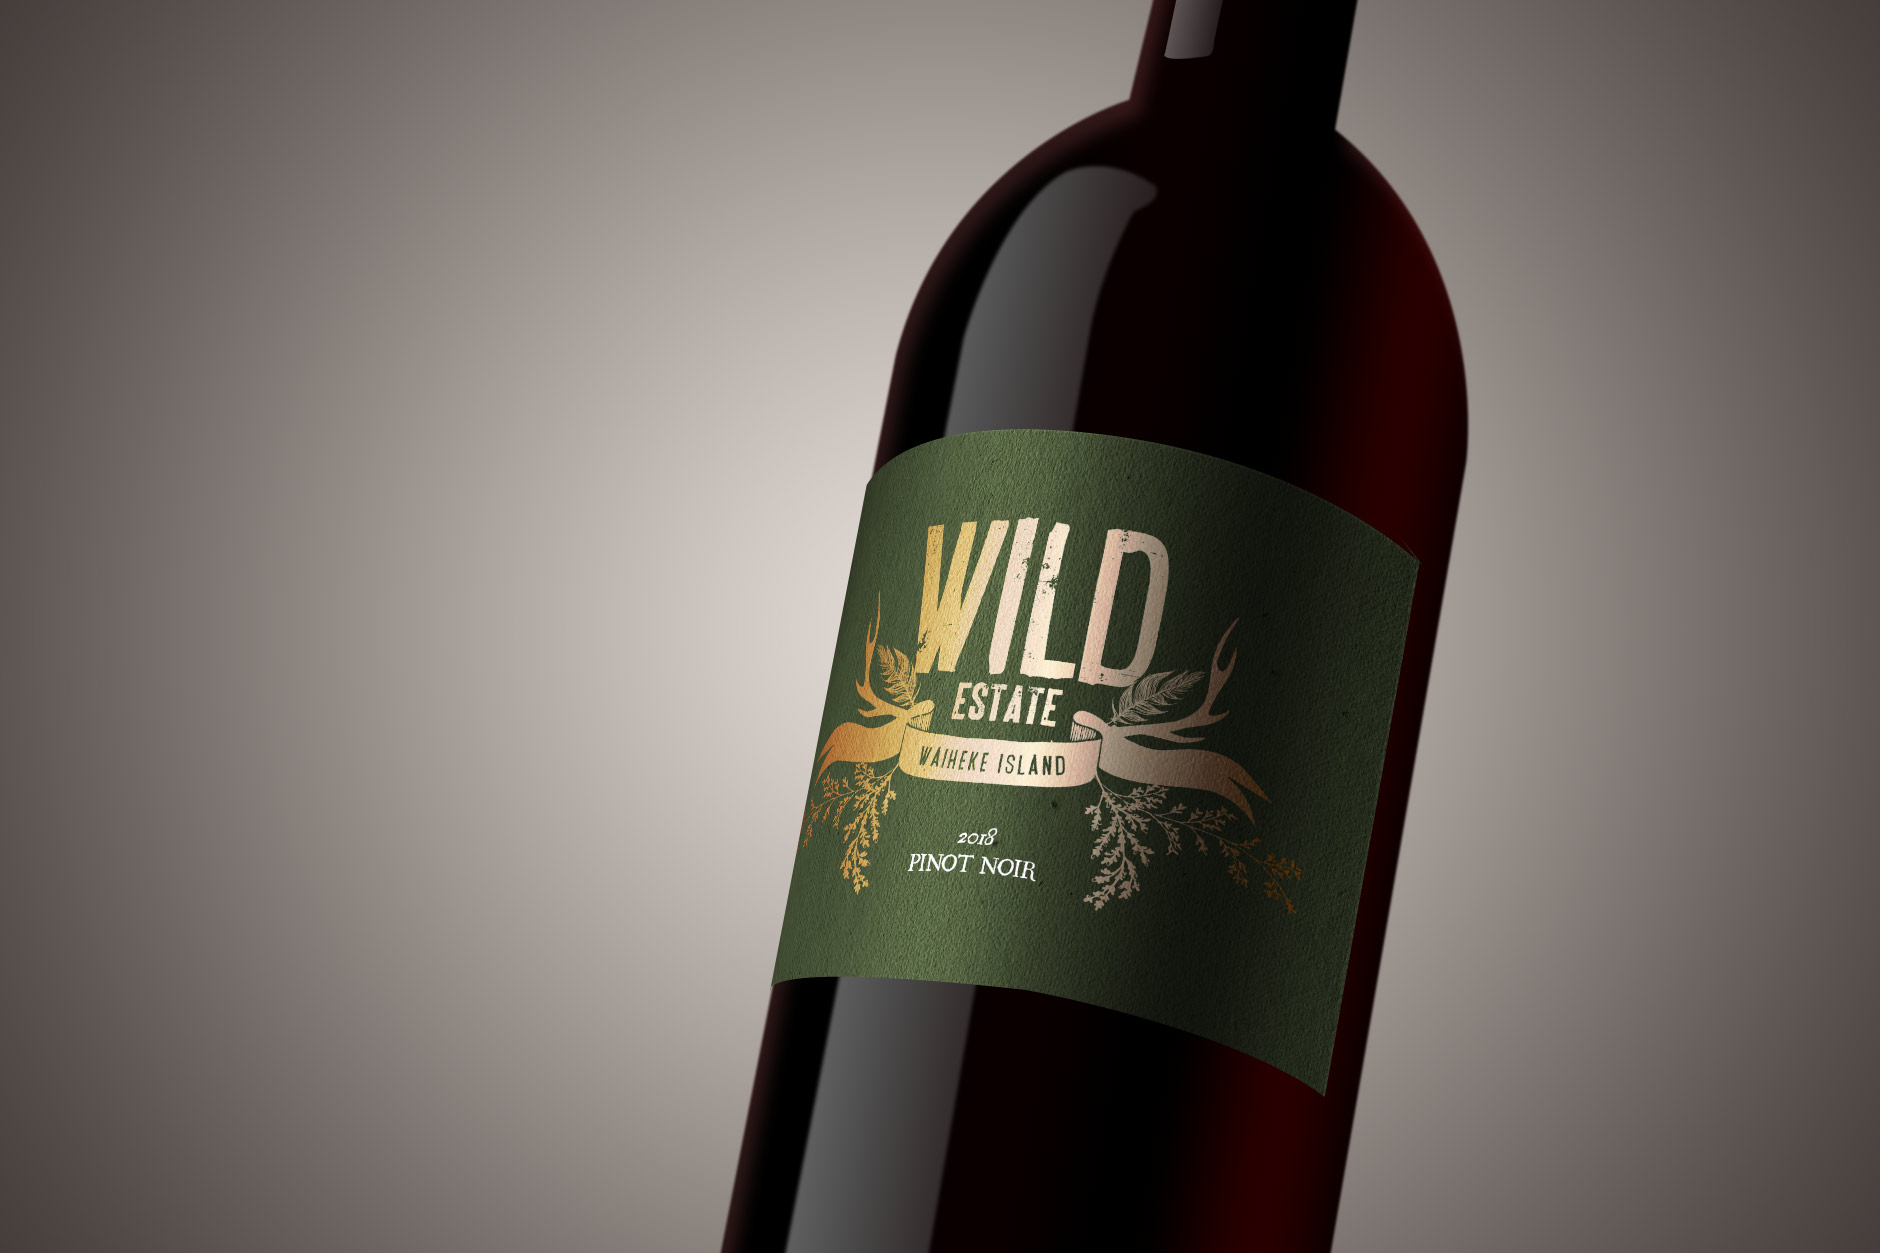 Wild Estate wine